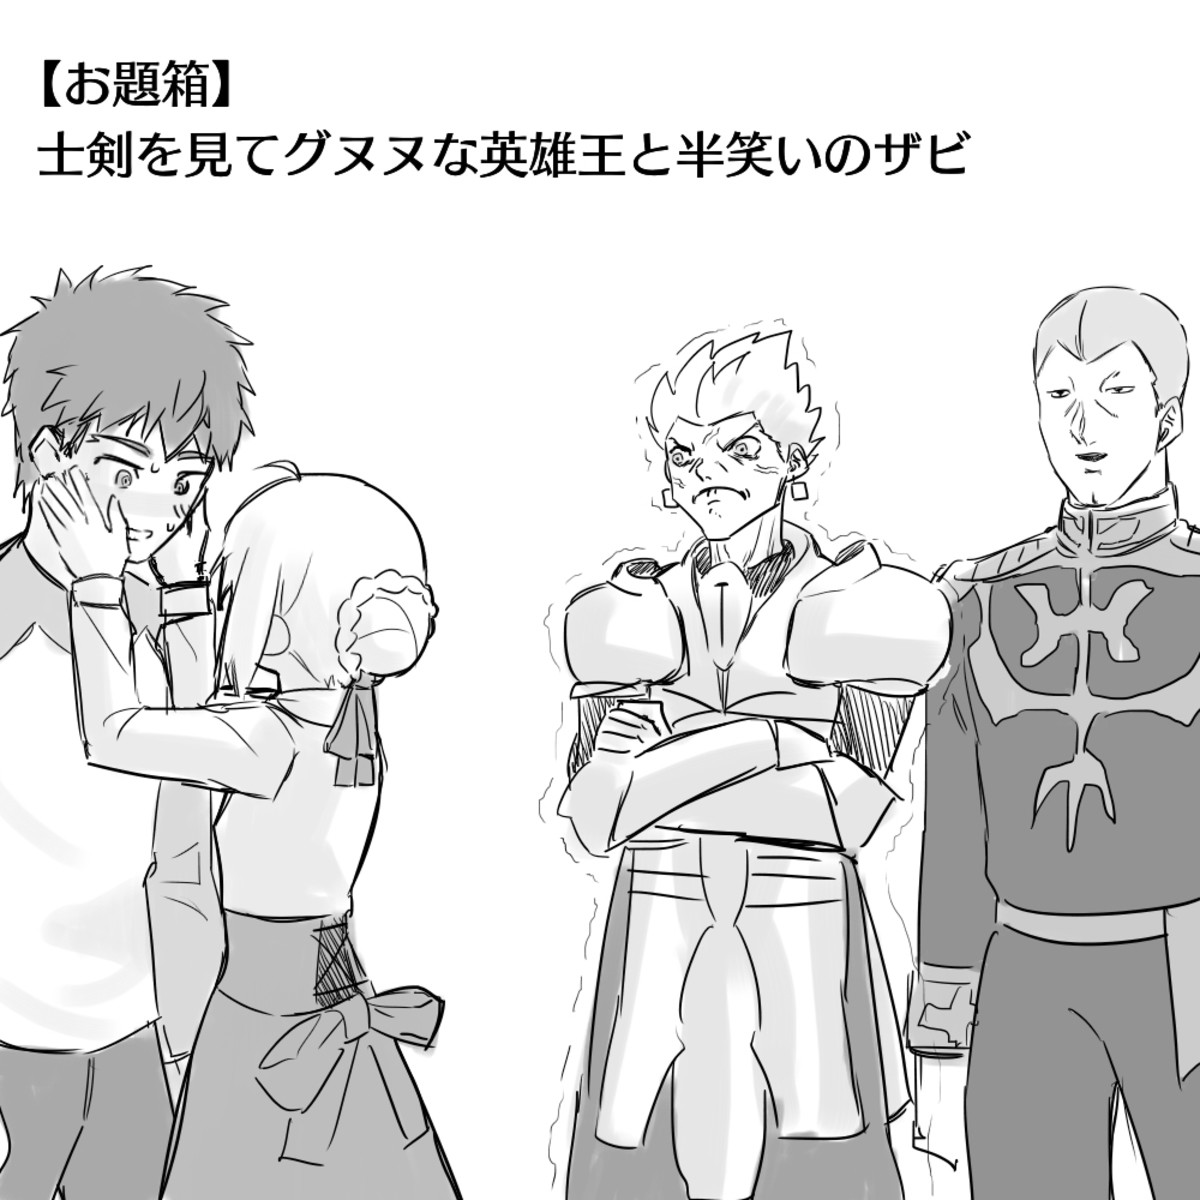 When you're the King of Heroes but she still likes that mongrel. https://www.pixiv.net/member.php?id=9440192.. Why is Gihren Zabi there?